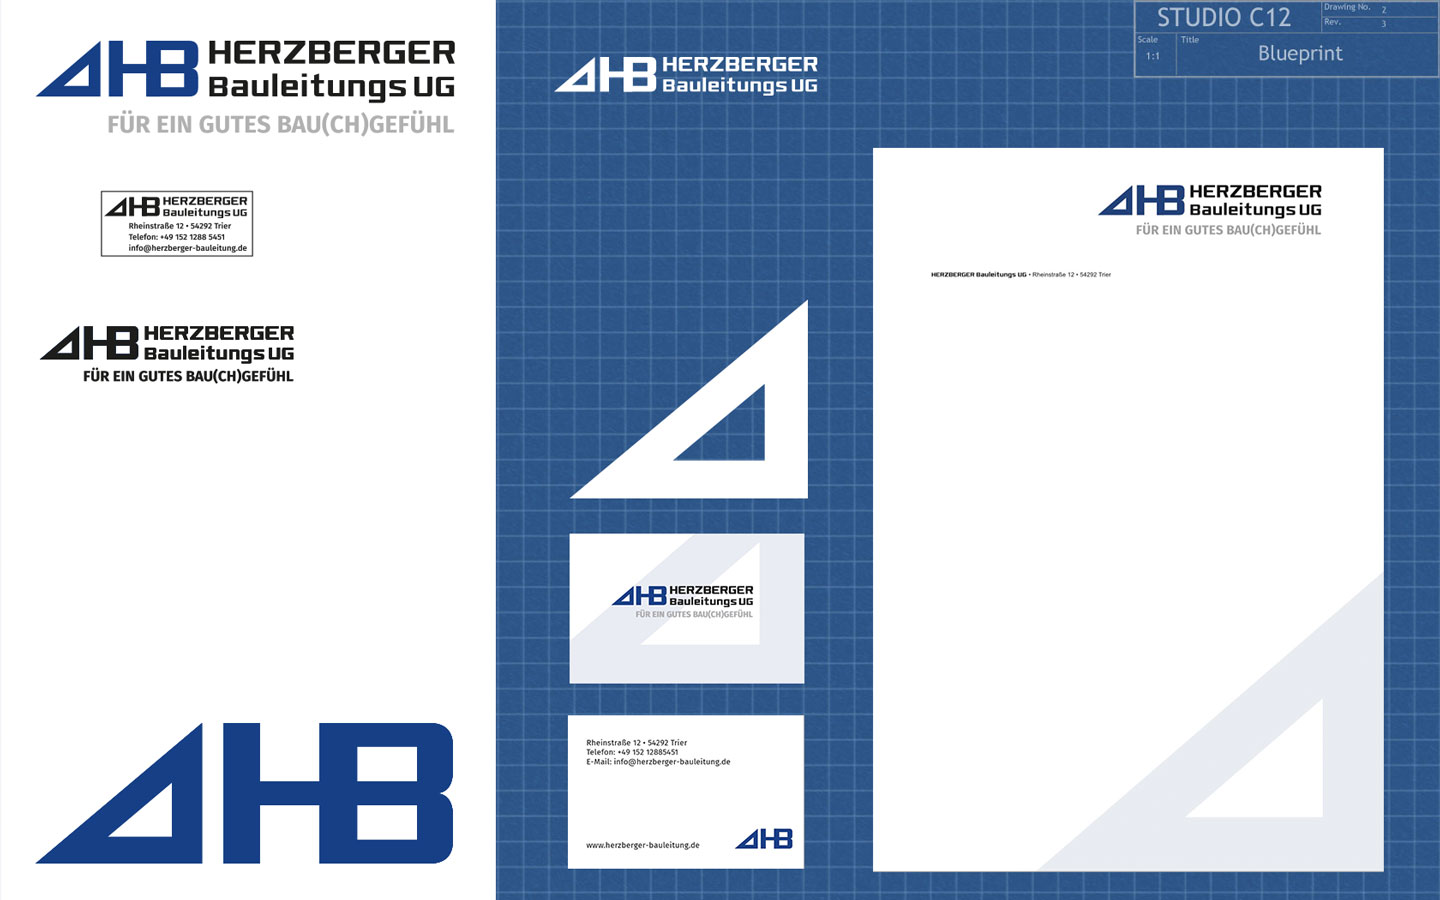 Herzberger Bauleitung UG Corporate Design